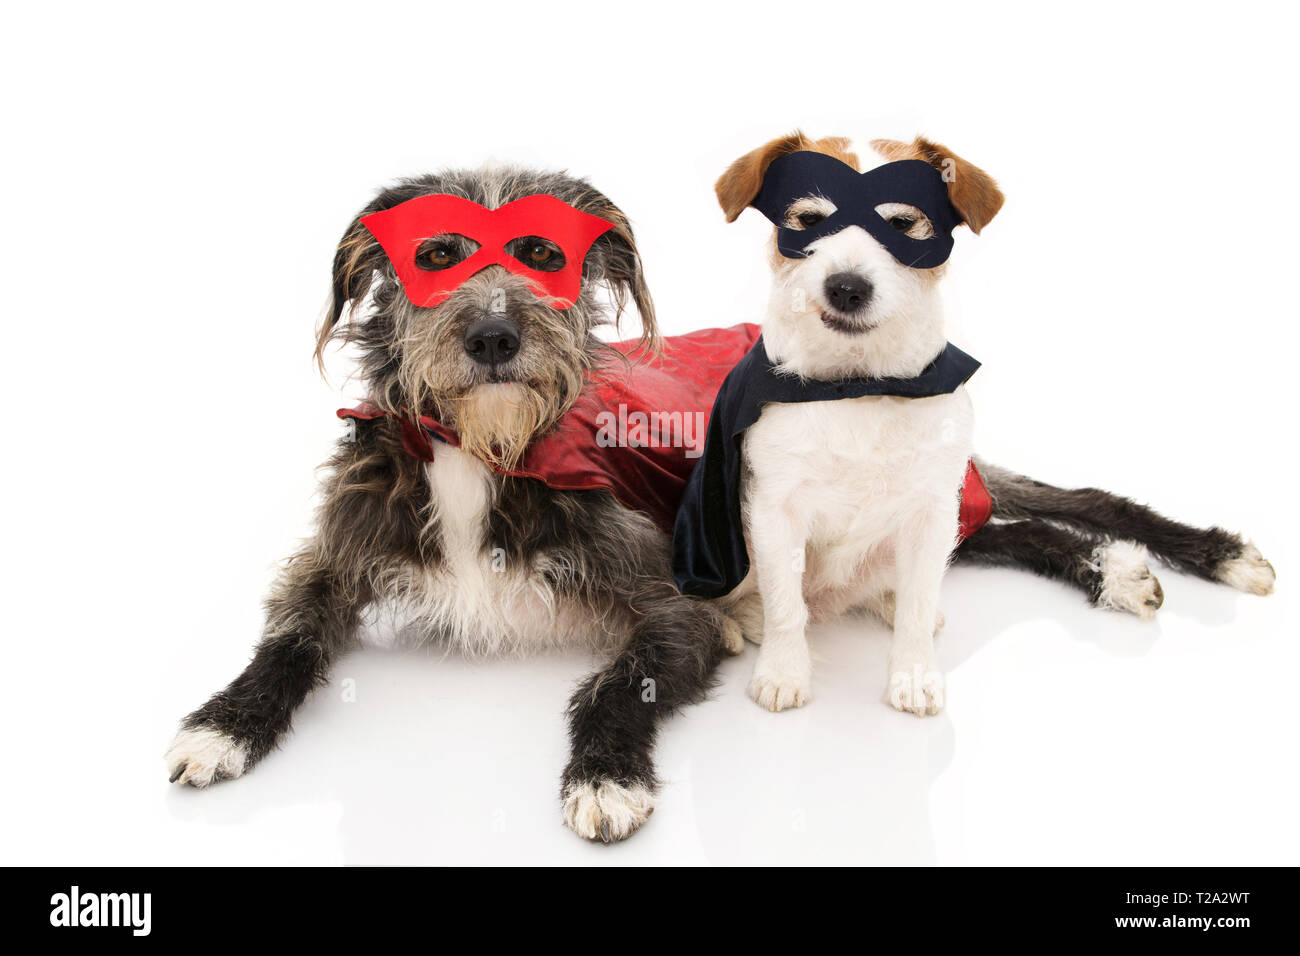 TWO FUNNY DOGS SUPER HERO COSTUME. JACK RUSSELL AND PUREBRED WEARING A RED AND BLUE MASK AND A CAPE. CARNIVAL OR HALLOWEEN. ISOLATED STUDIO SHOT AGAIN - Stock Image